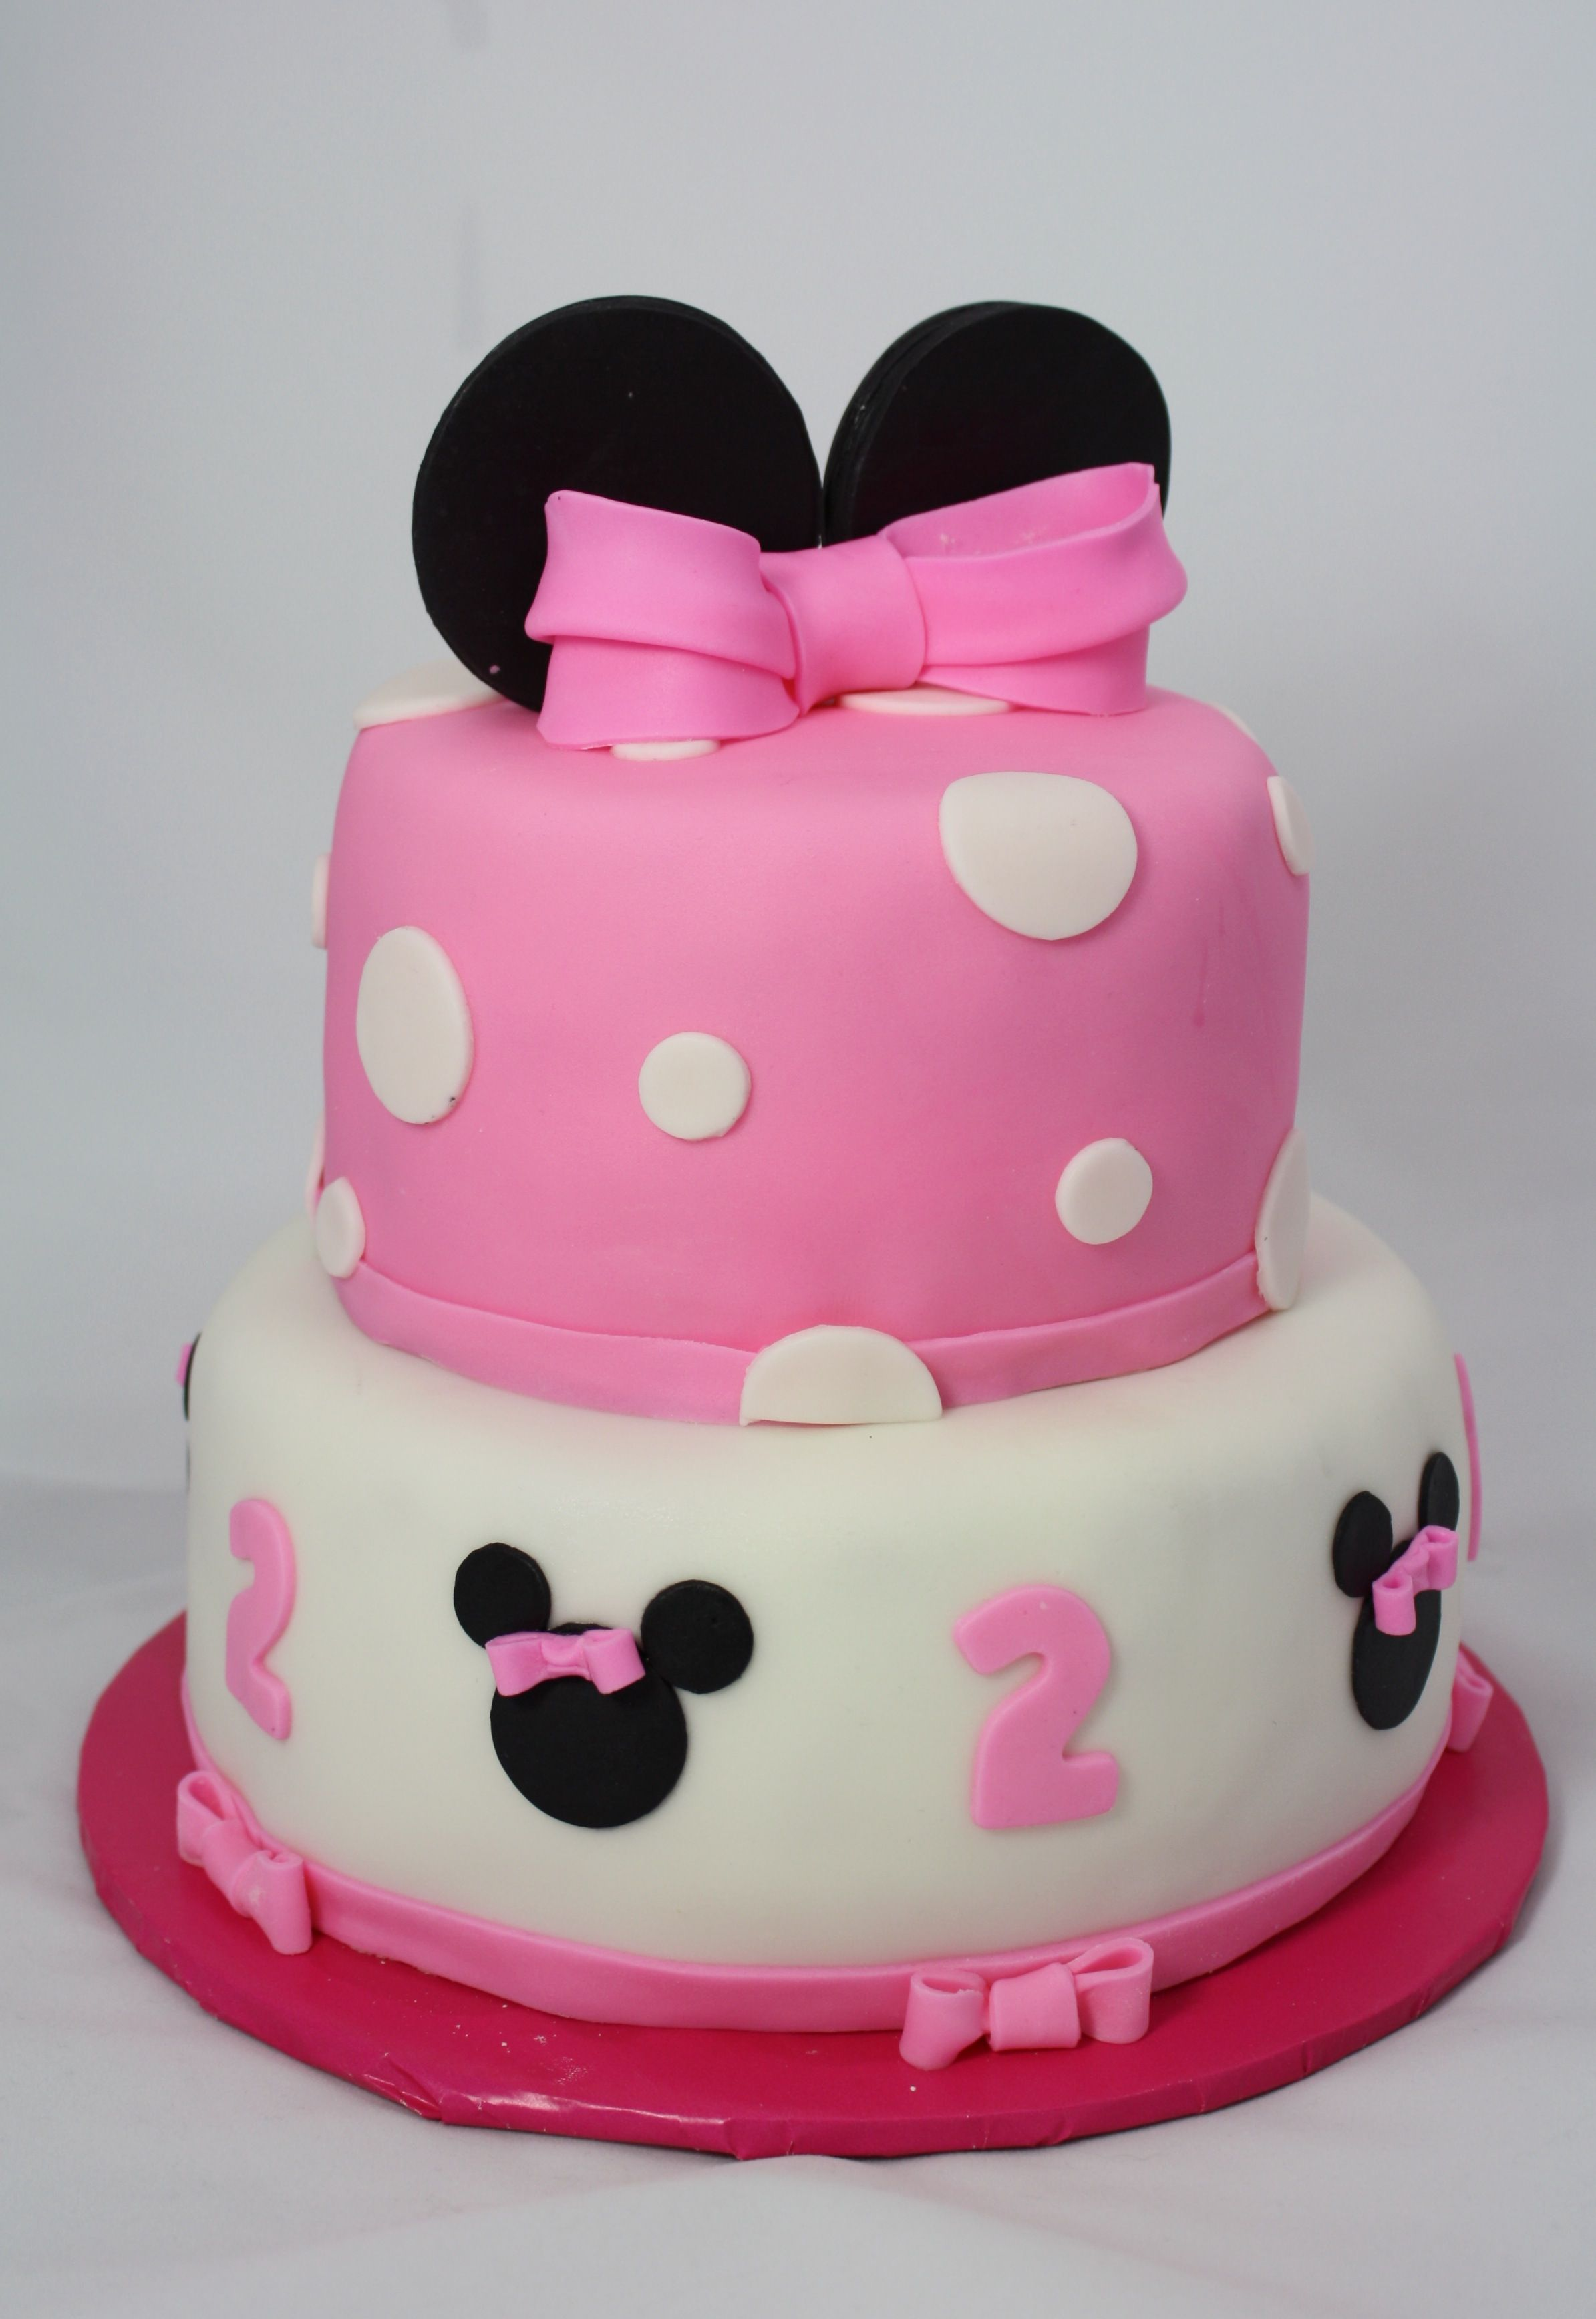 Minnie Mouse Cake Minnie Mouse Party Pinterest Mouse cake